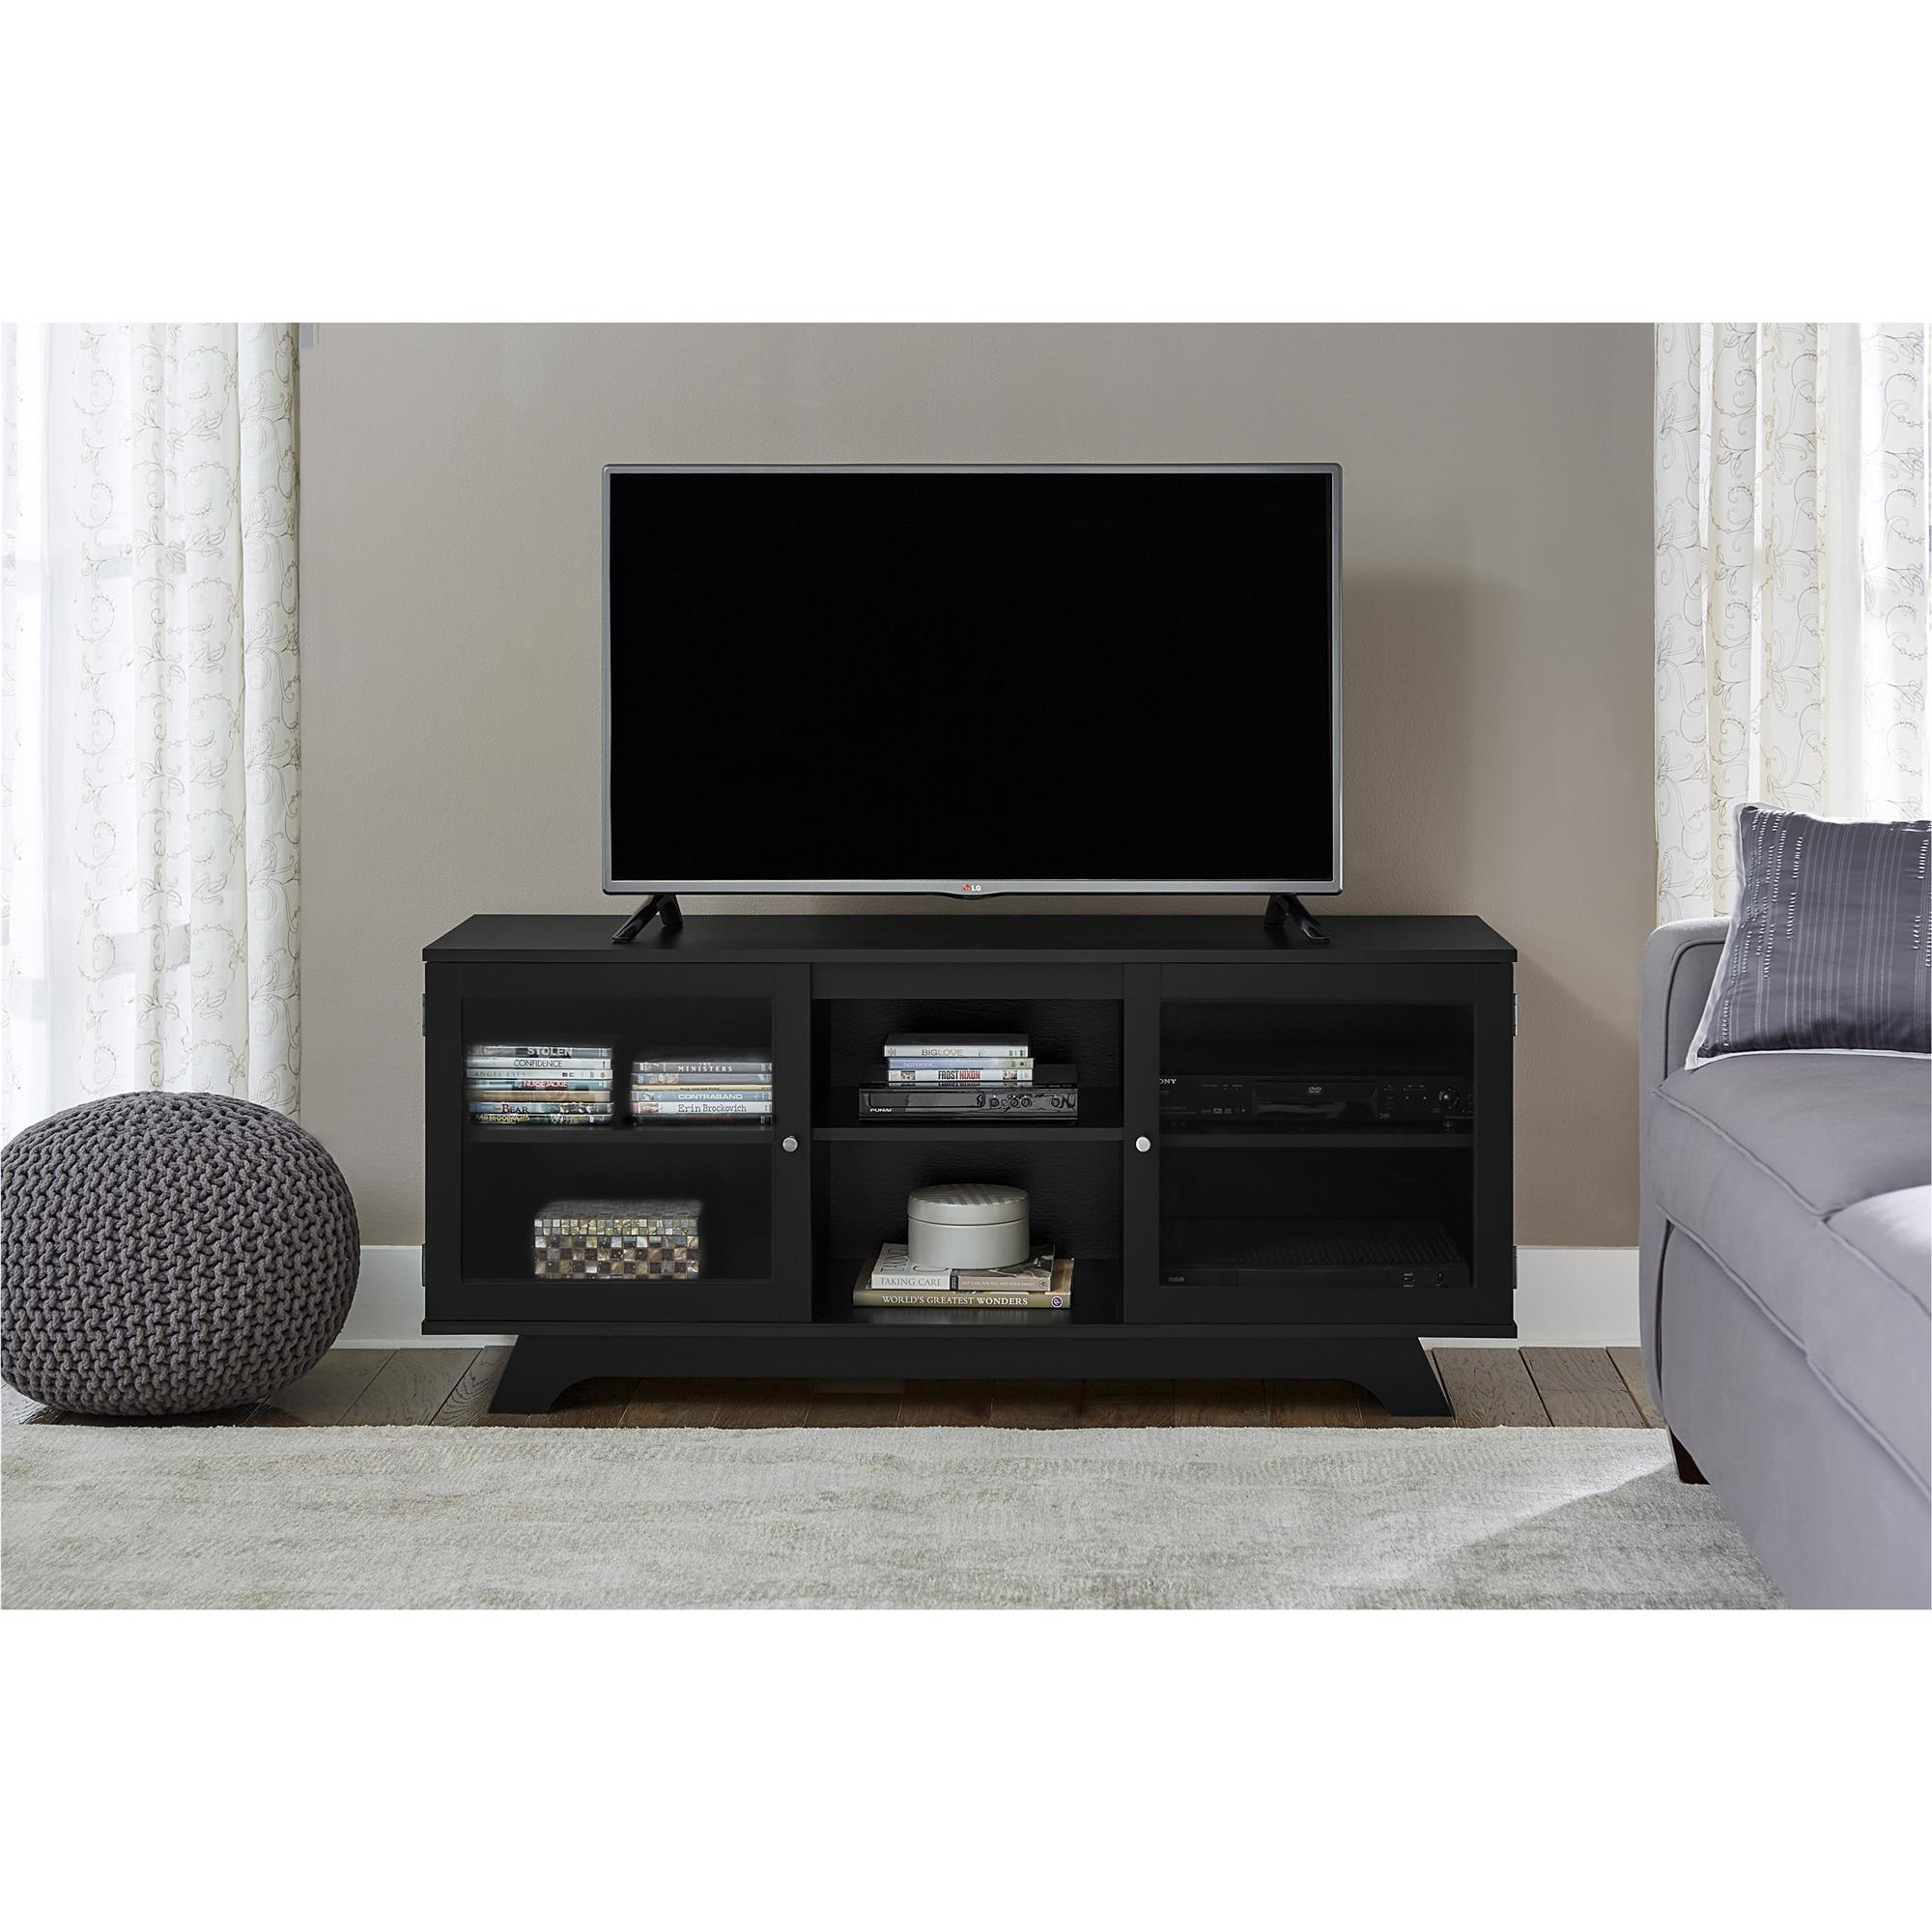 Meuble Tv Sony Home Cinema Ameriwood Home Englewood Tv Stand For Tvs Up To 55